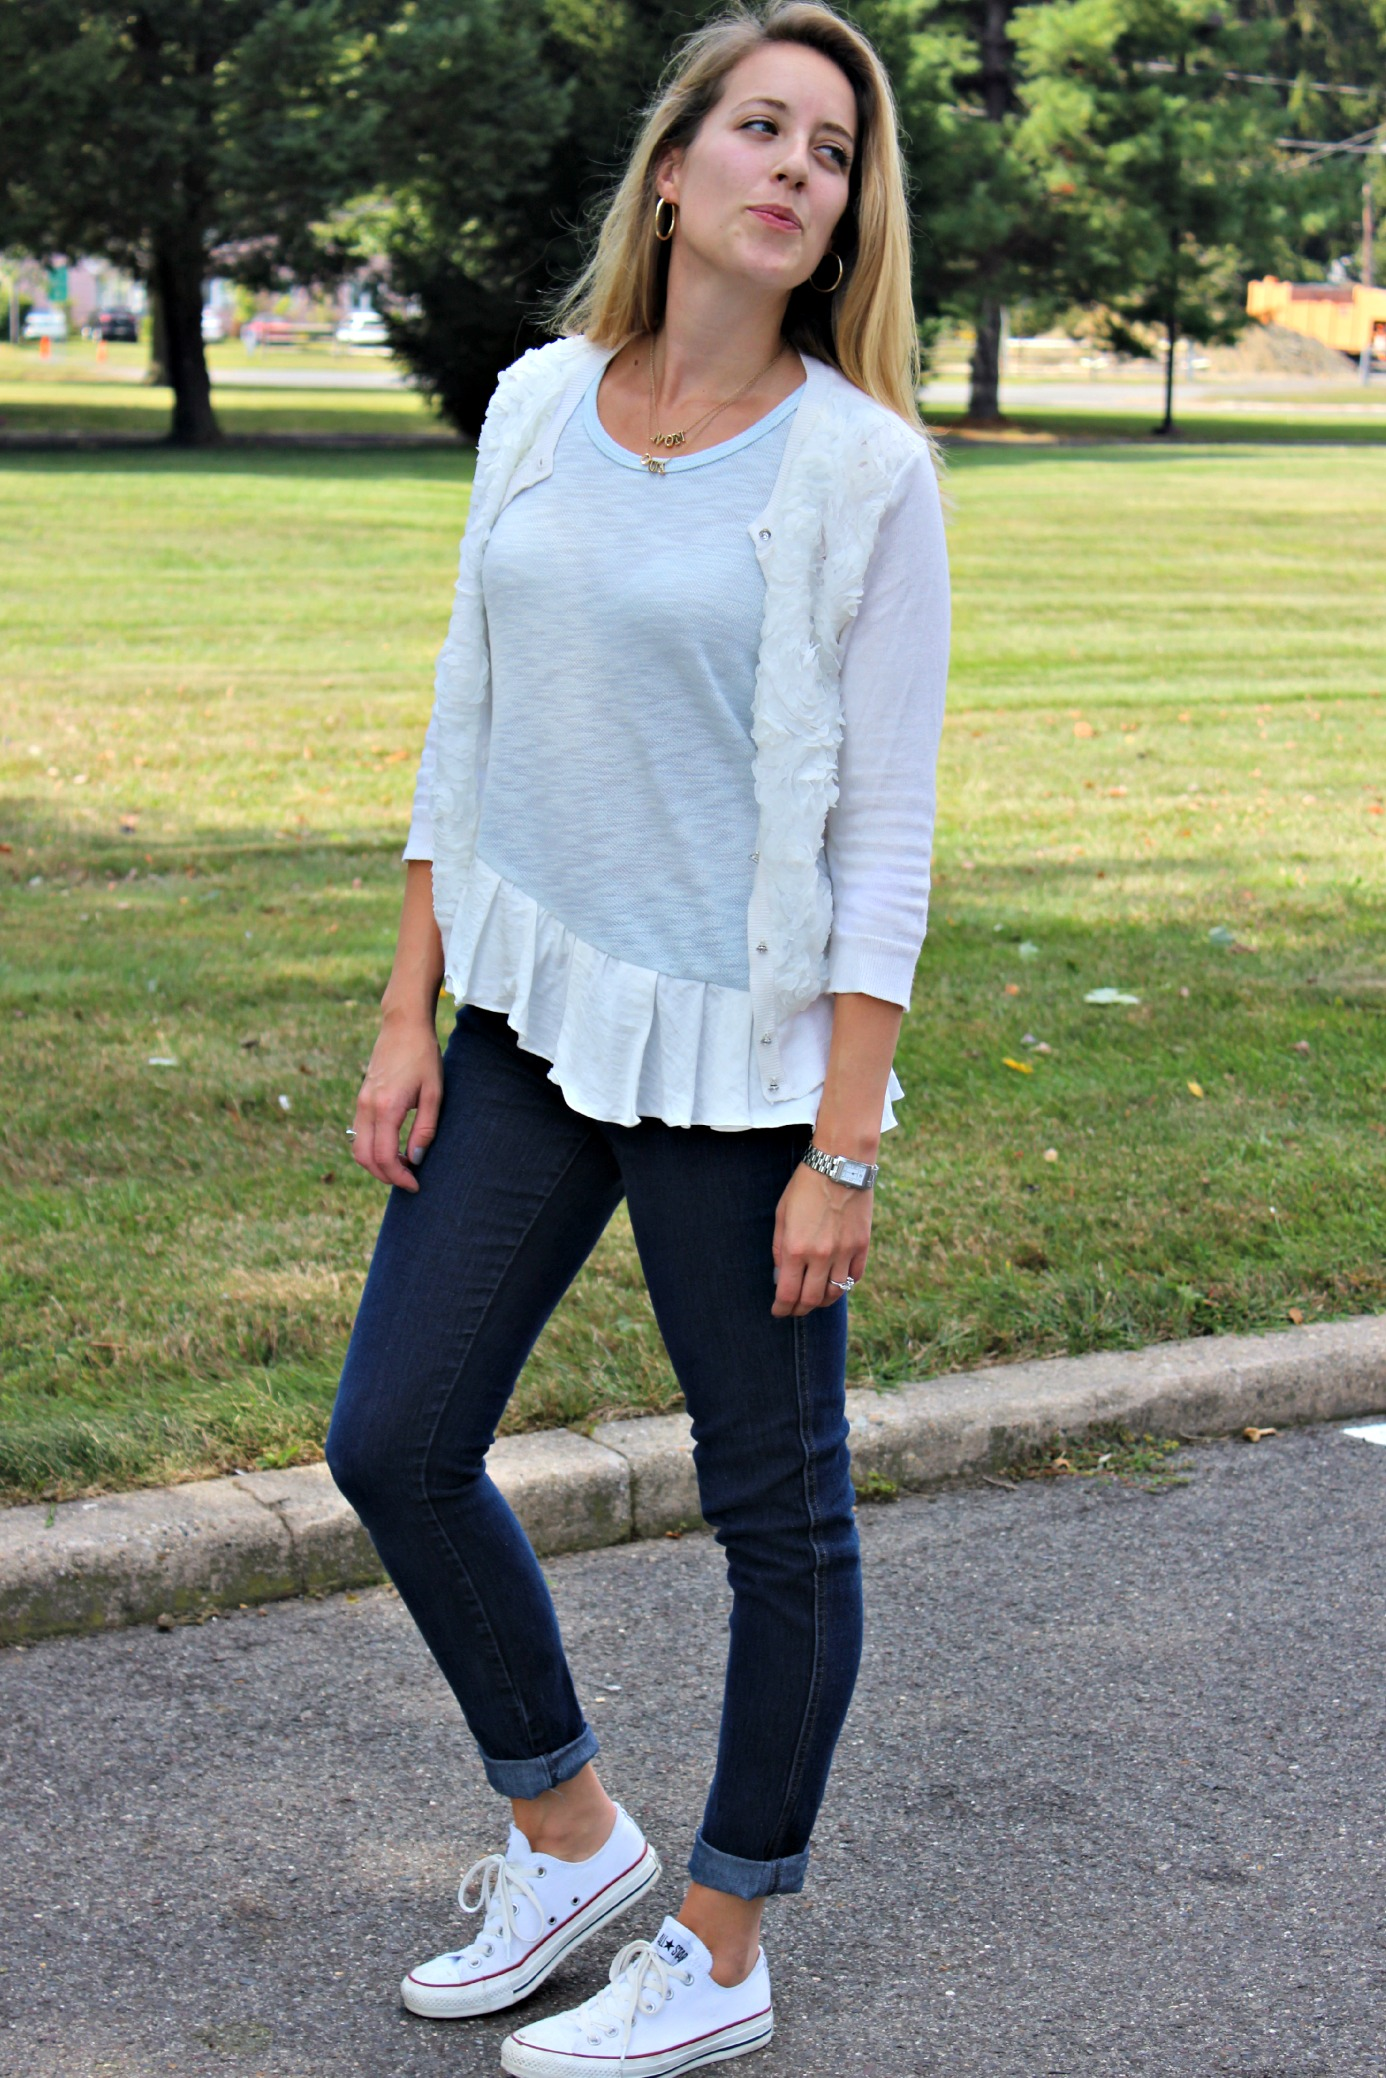 Wearing a Cloud: The Perfect Ruffled Tank